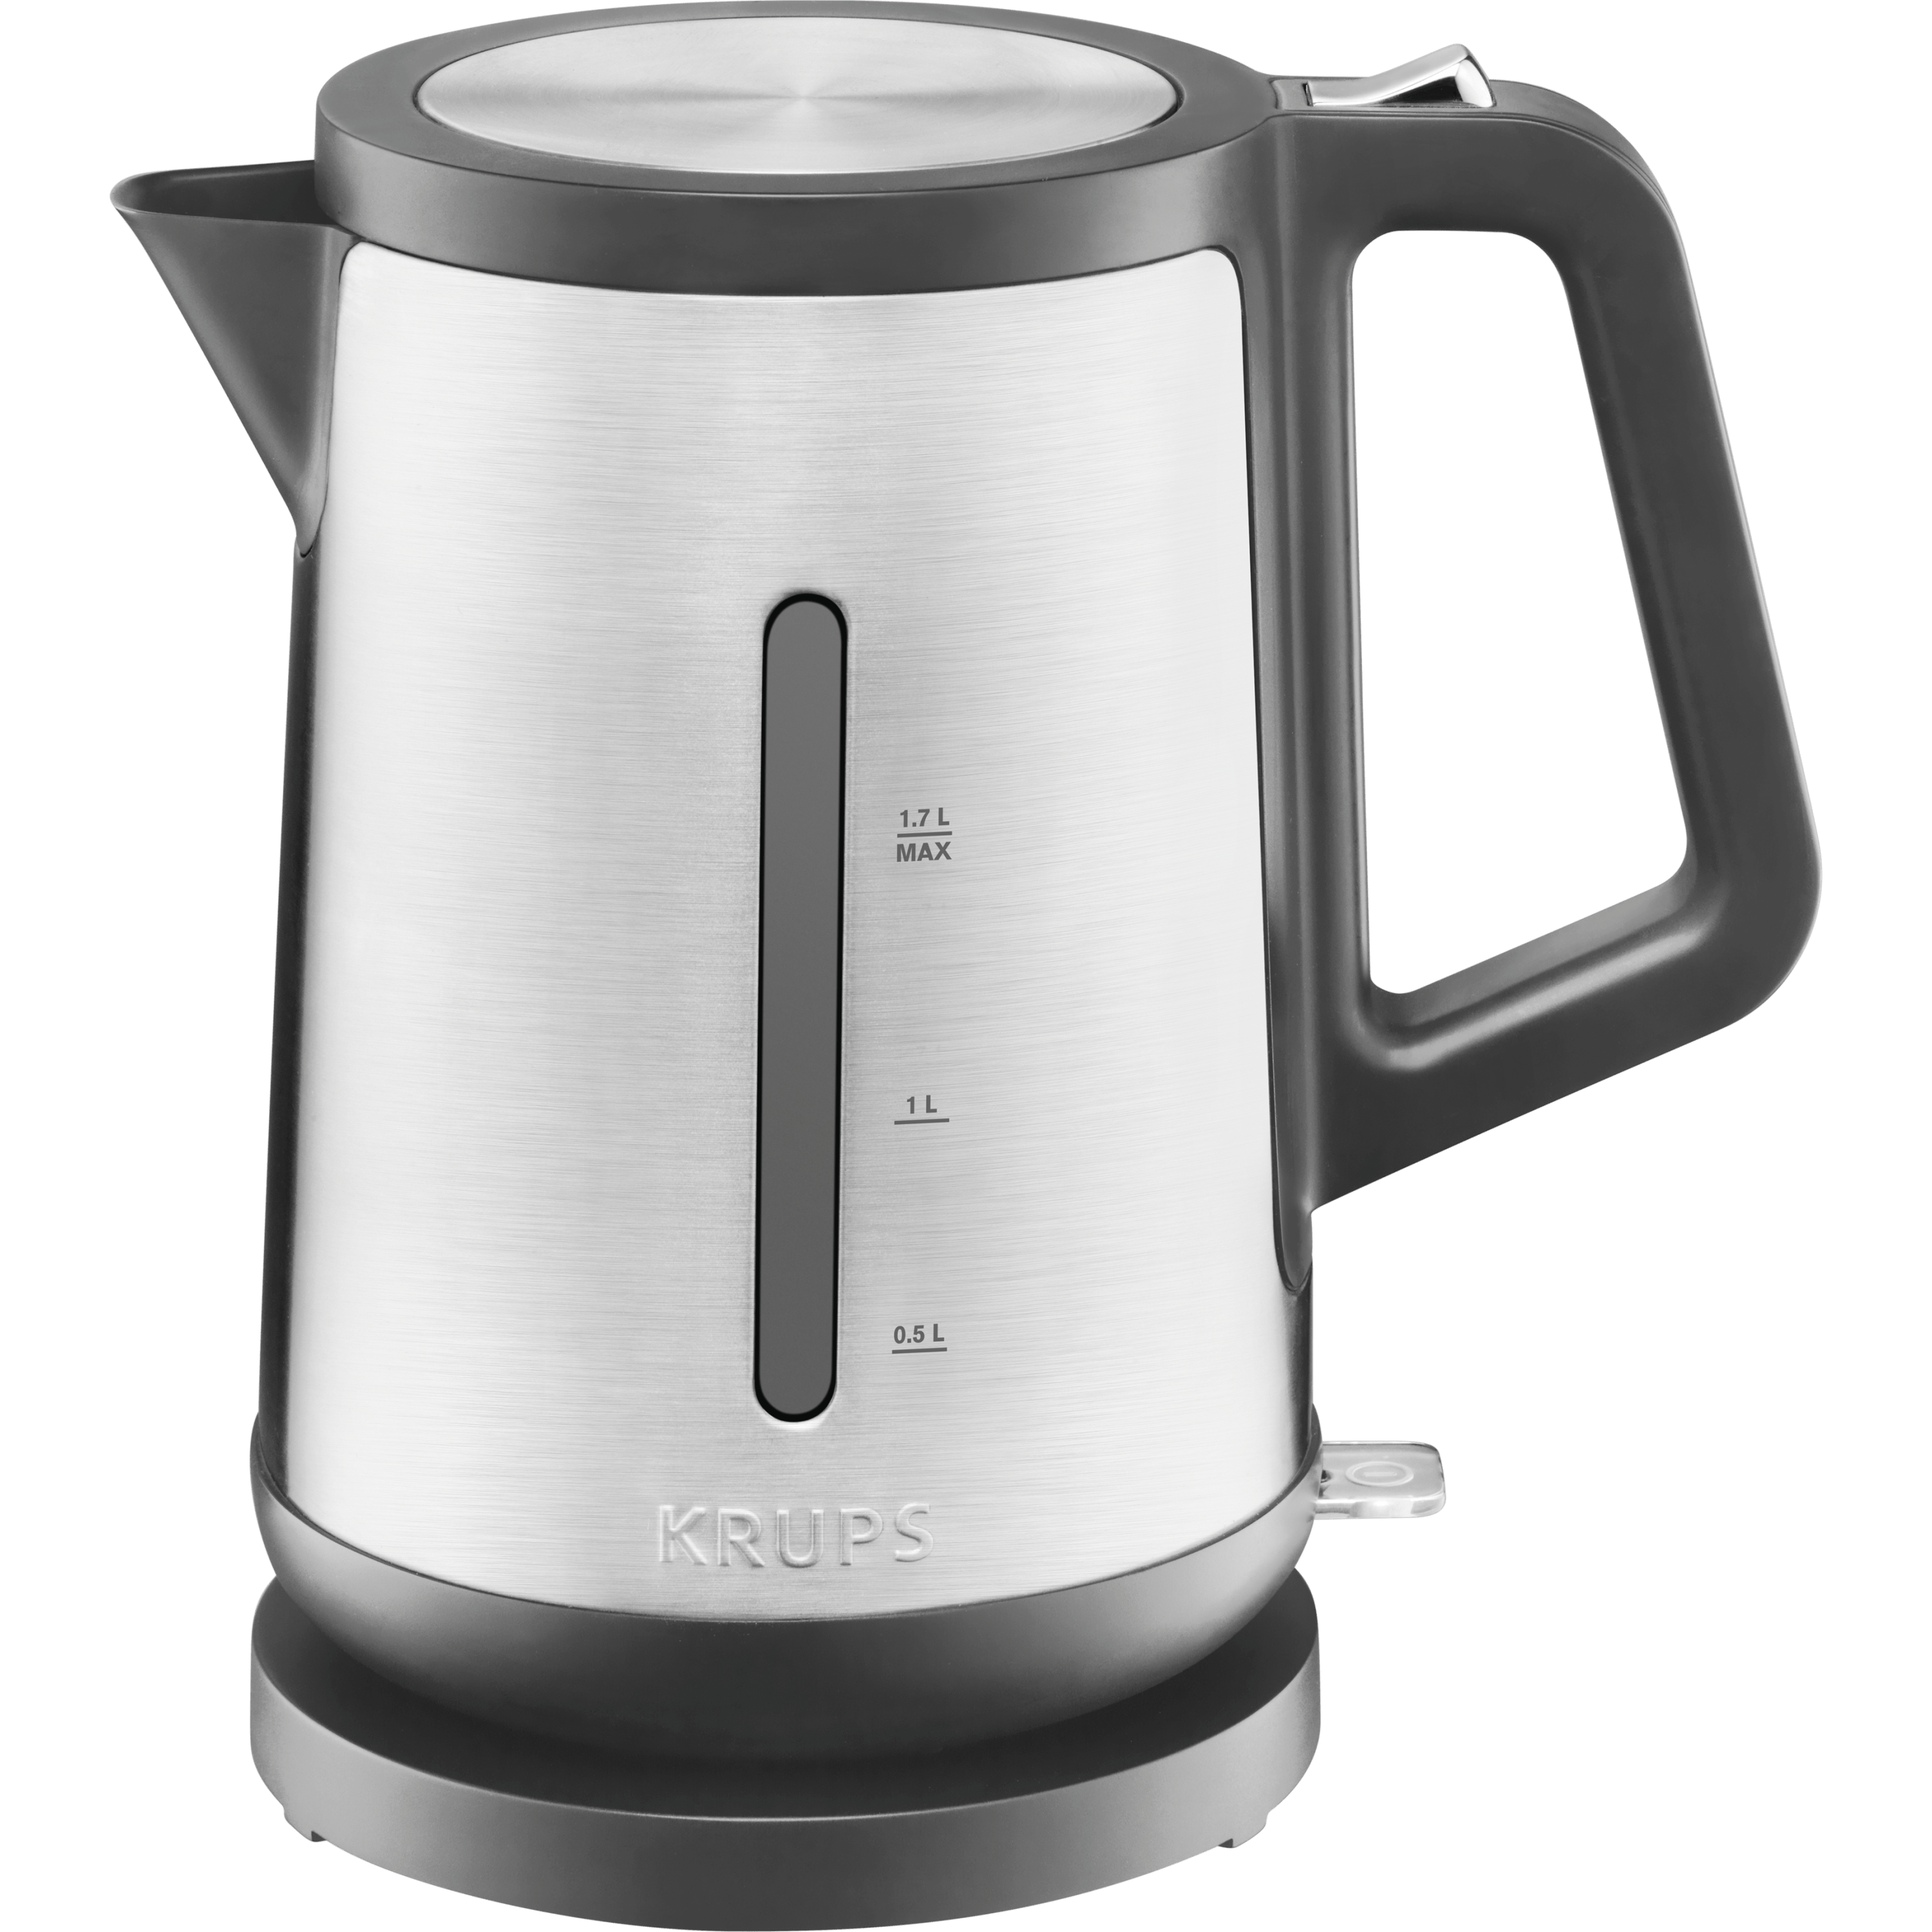 KRUPS 1.7L Electric kettle, Brushed Stainless Steel, BW442D50